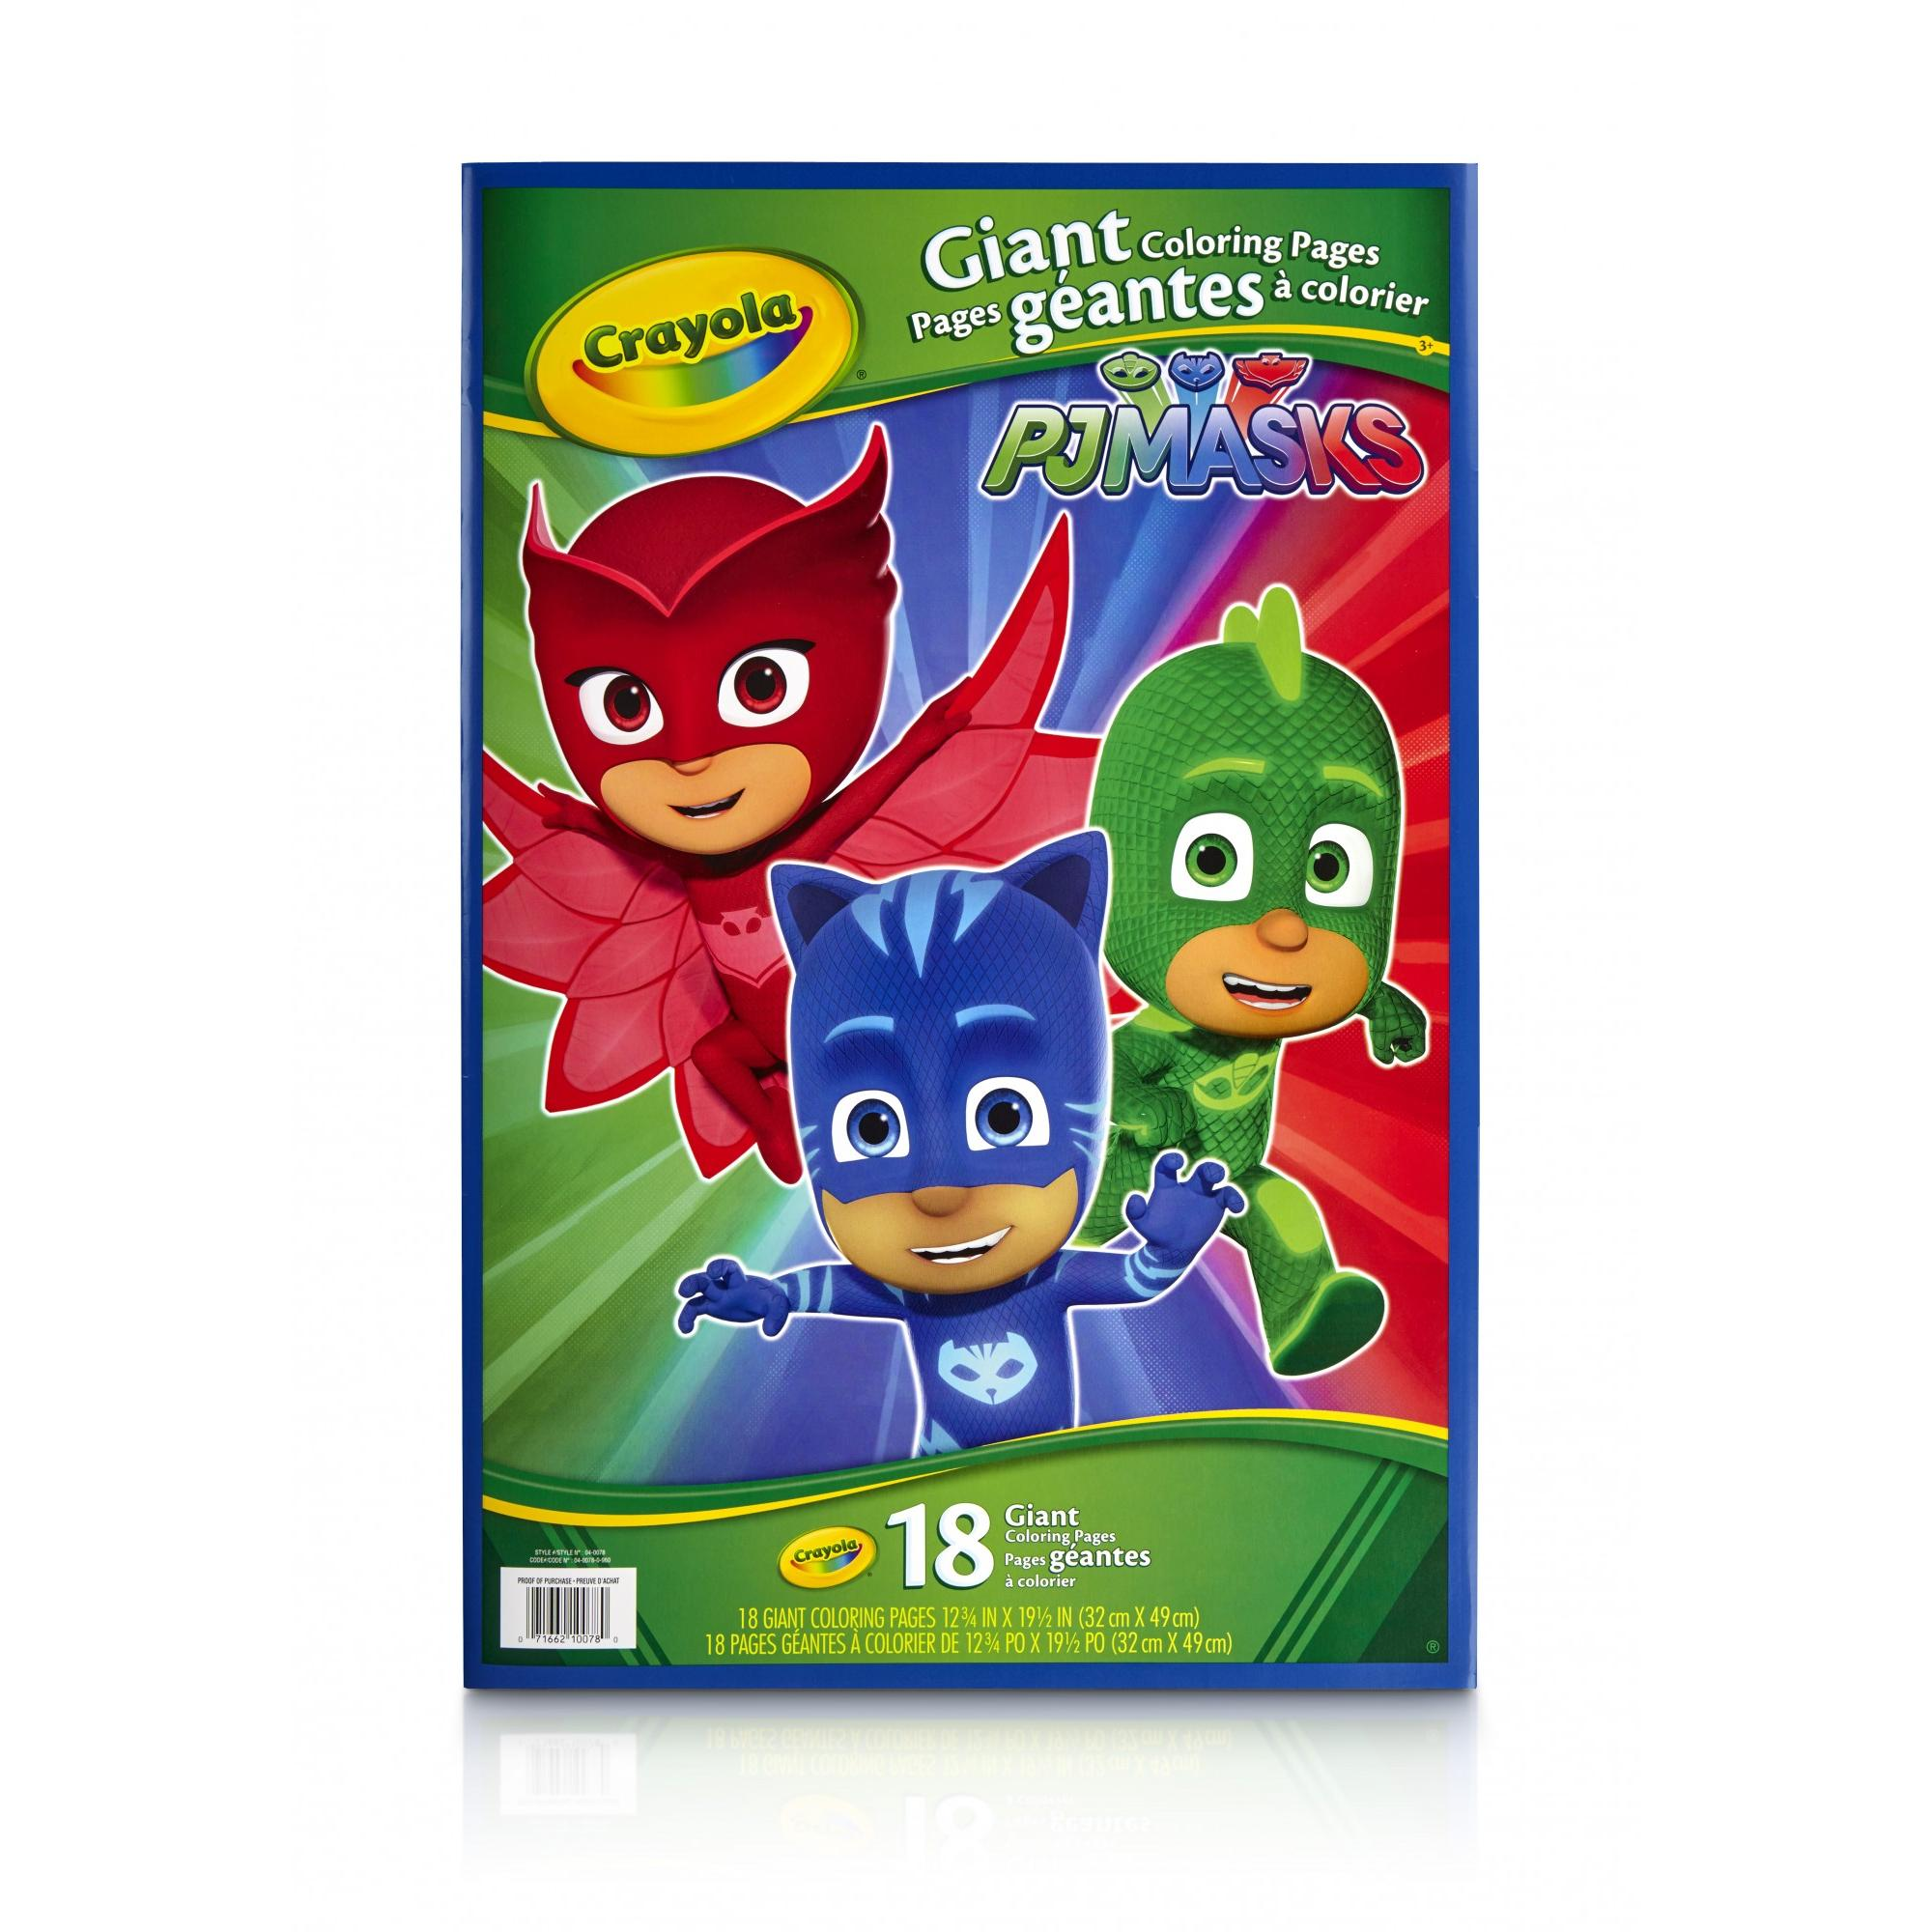 Crayola, Disney's PJ Masks, 18 Giant Coloring Pages, Gift for Kids by Crayola